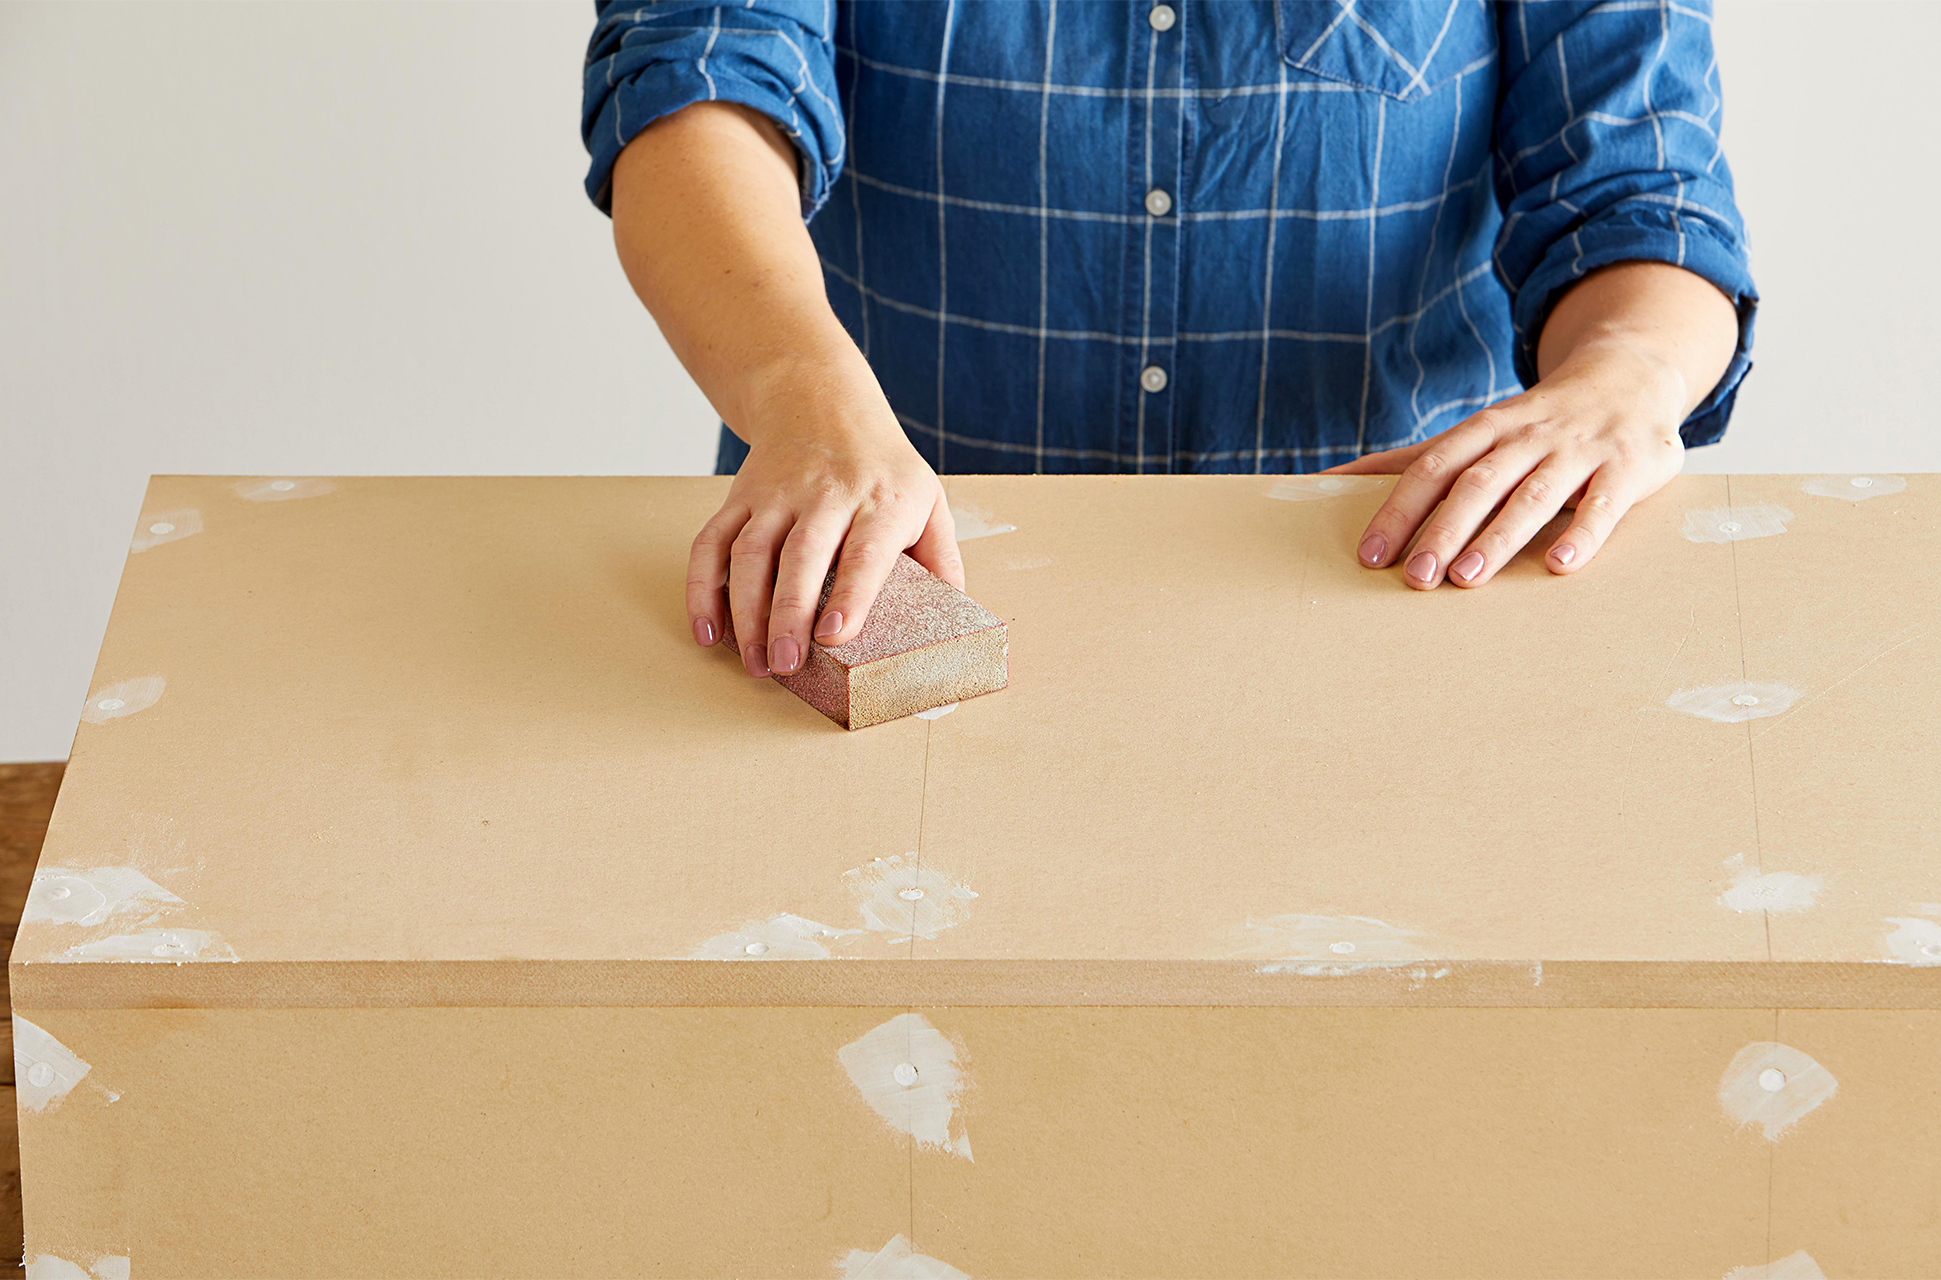 use sanding block to smooth rough surfaces